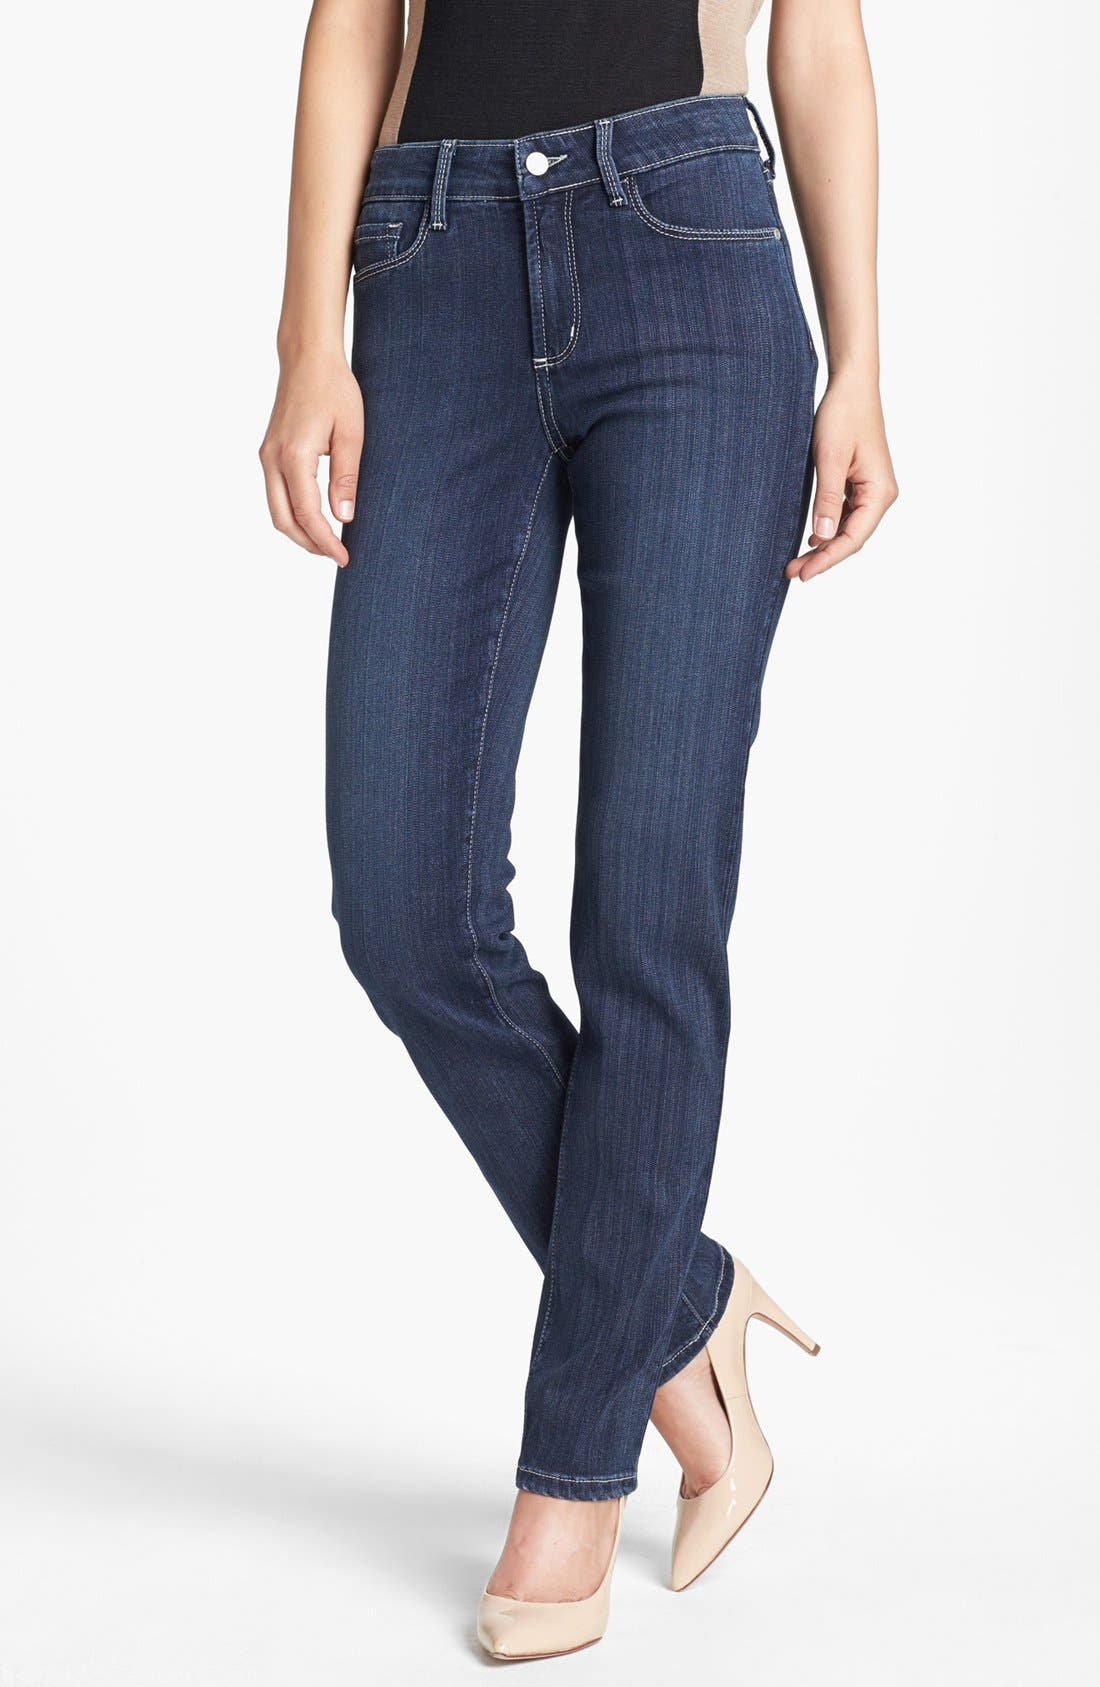 Alternate Image 1 Selected - NYDJ 'Sheri' Stretch Skinny Jeans (Regular & Petite)